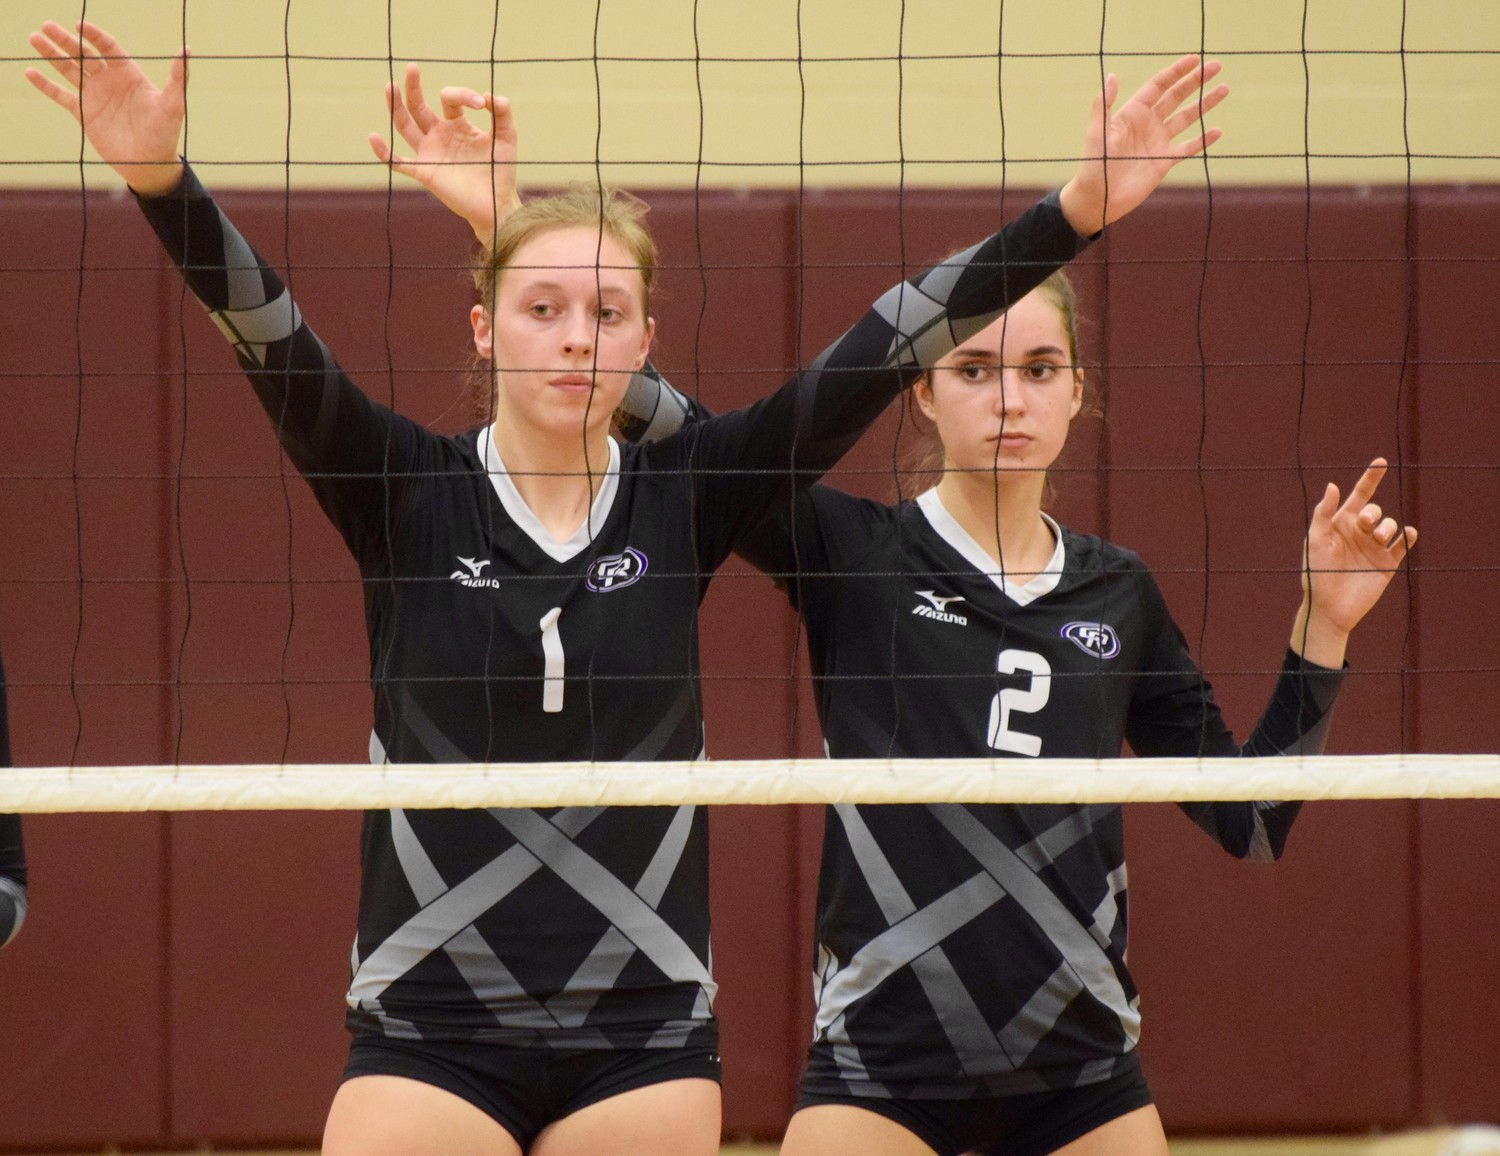 Andi Wagner, left, Lauren Prendeville and Cedar Ridge lost to Round Rock  3-0 (25-18, 25-22, 25-23) on Tuesday night.